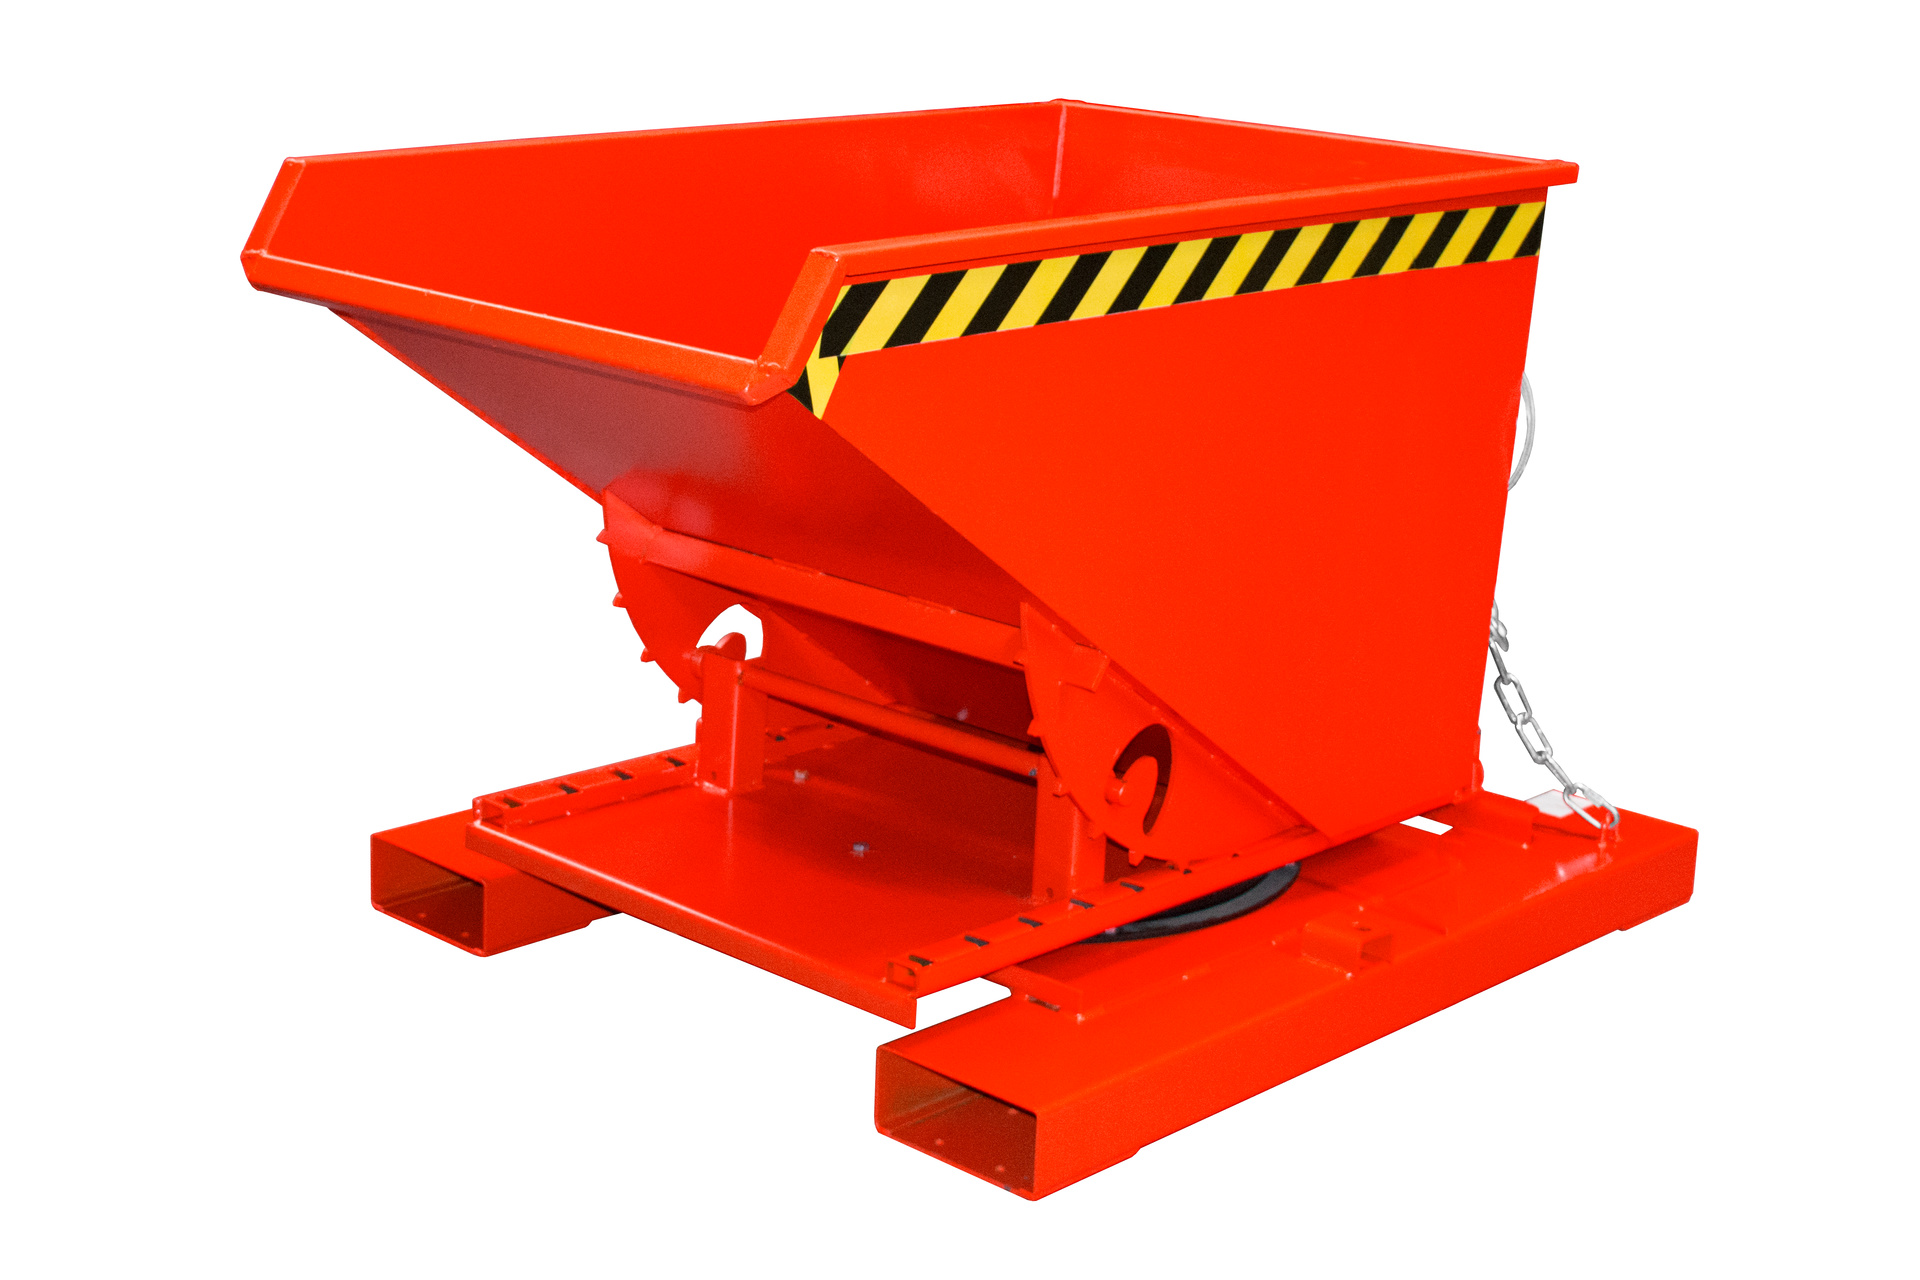 Bauer Südlohn® 3S tilting container, with 3-sided tilt function